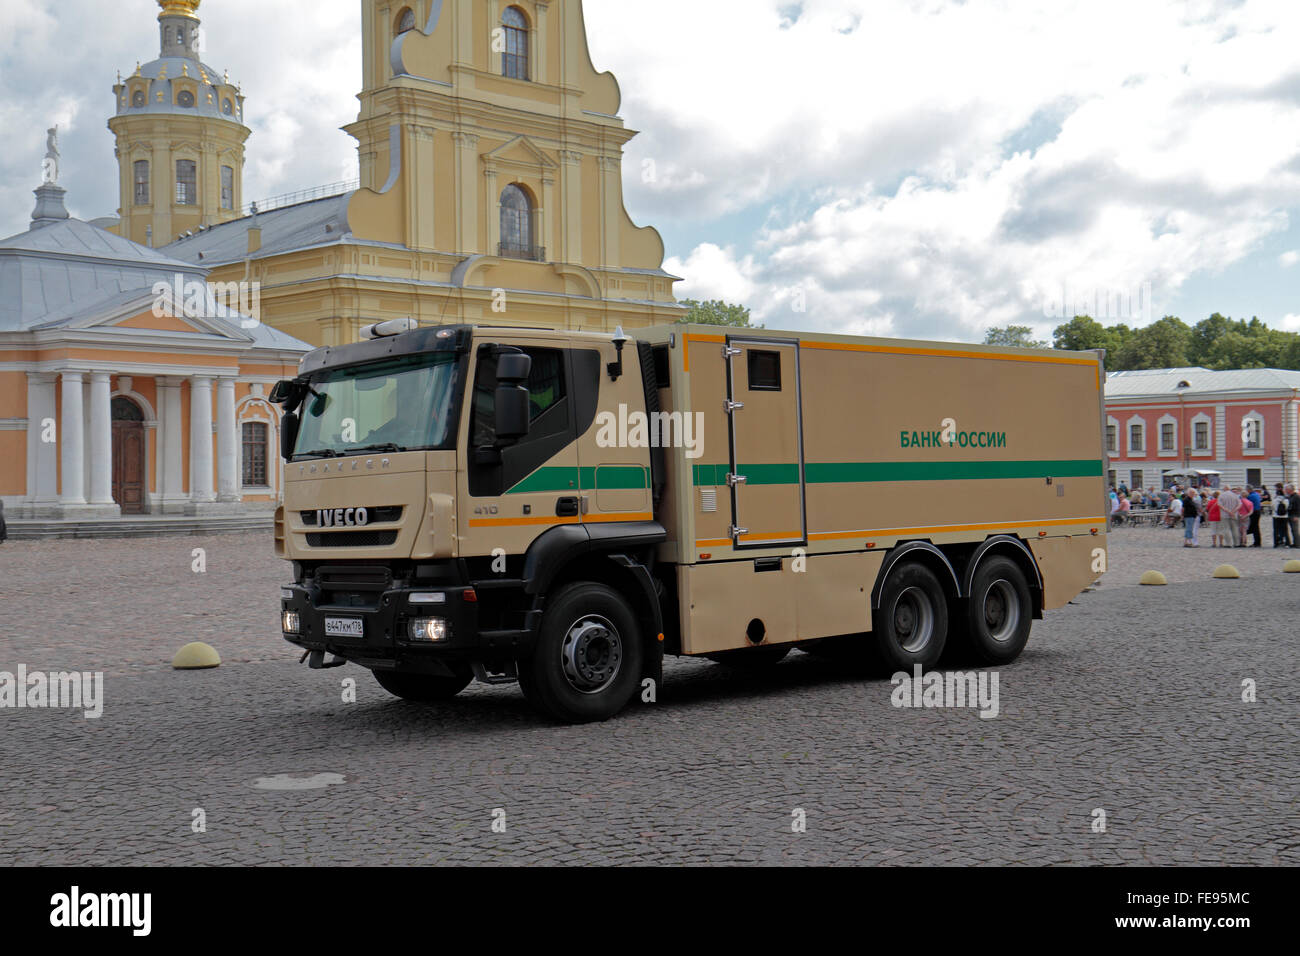 A Bahk Poccnn (Bank of Russia) cash security truck in the Peter ...